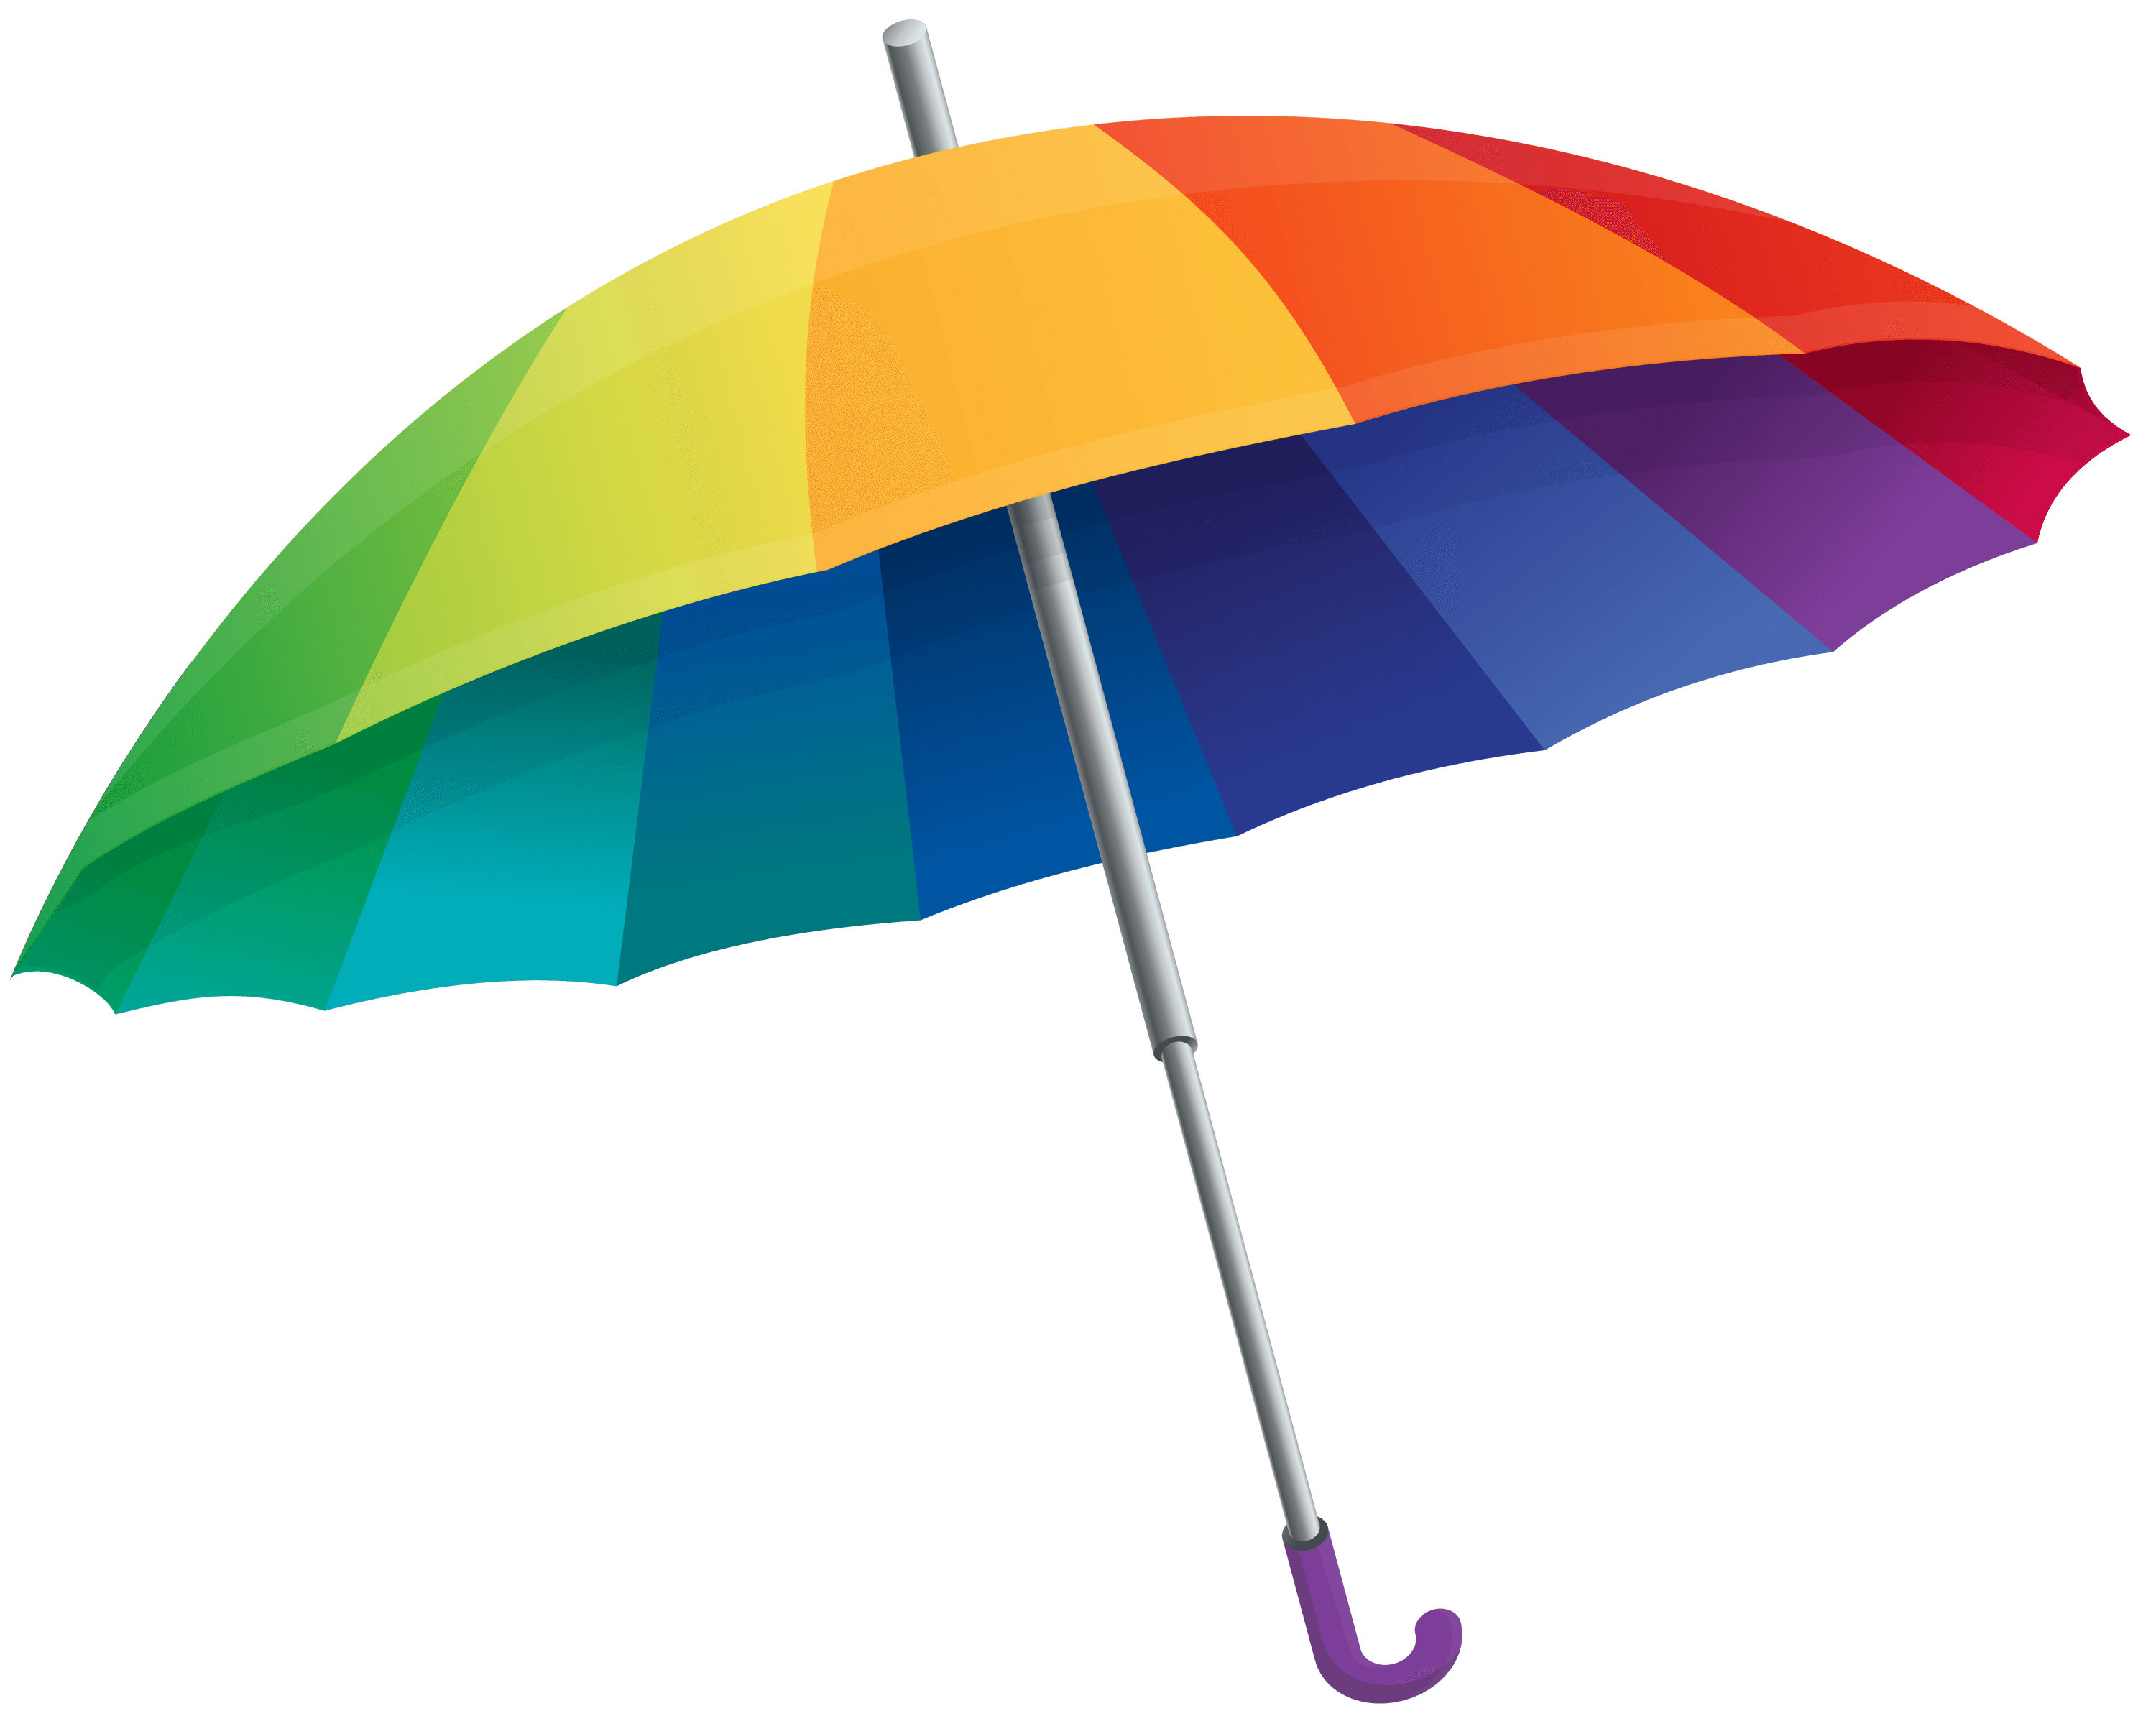 Umbrella, Rainbow, Colorful,